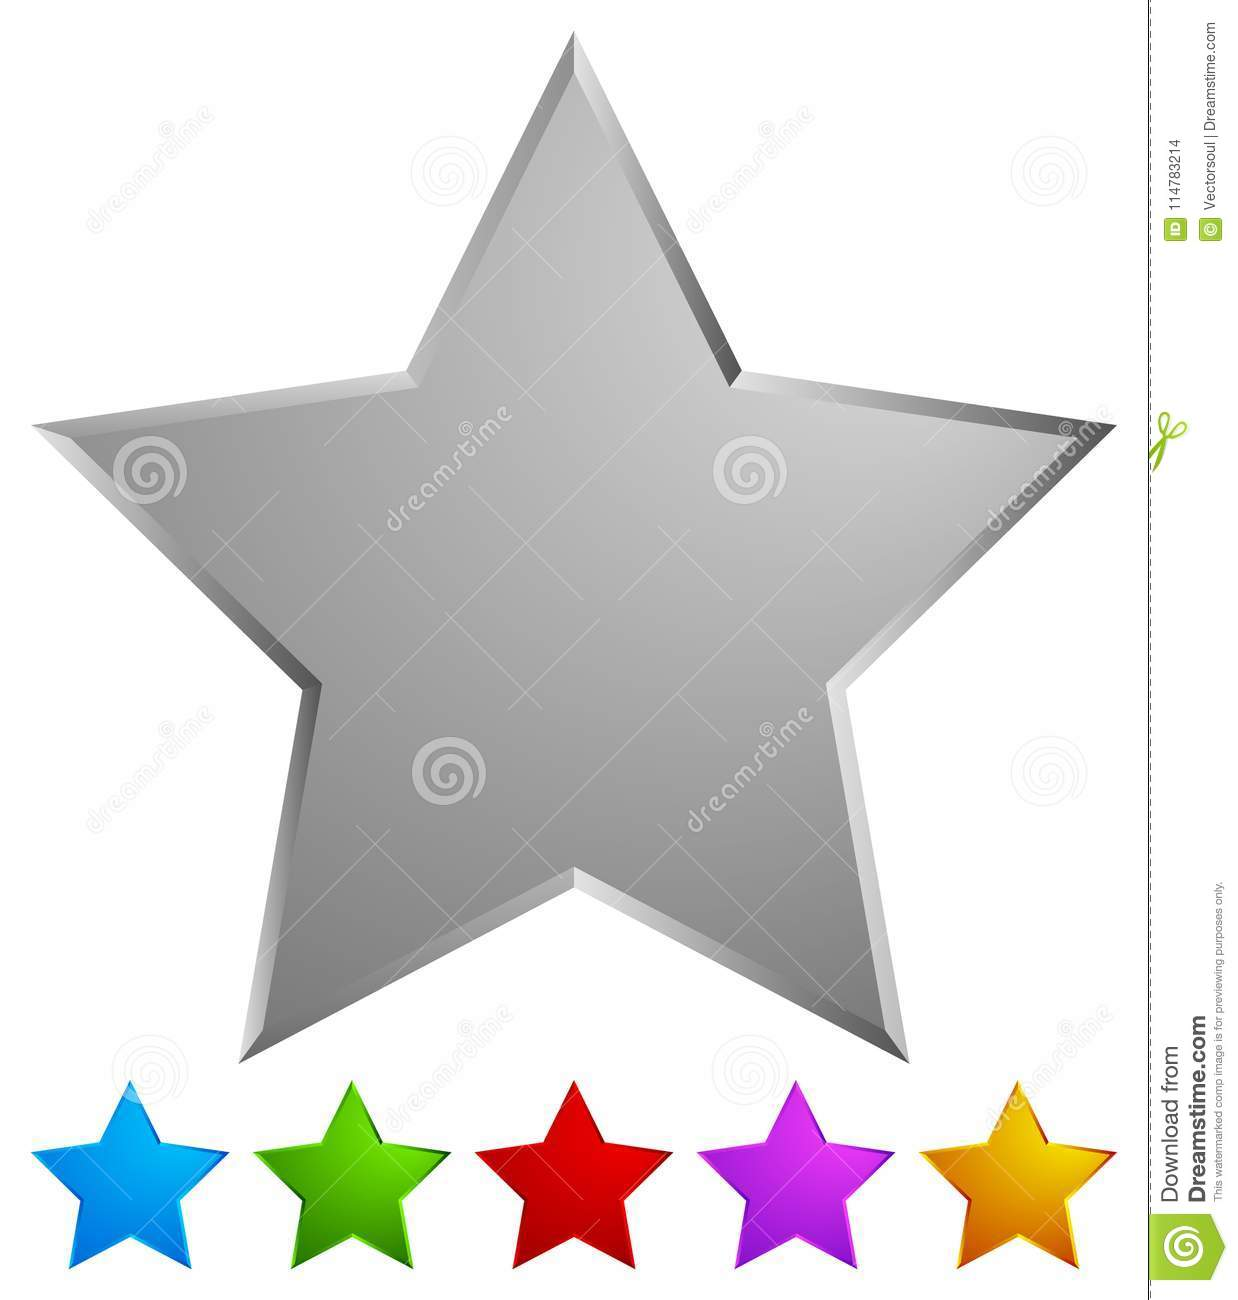 Star Rating System Icon / Colorful Star Design Element For